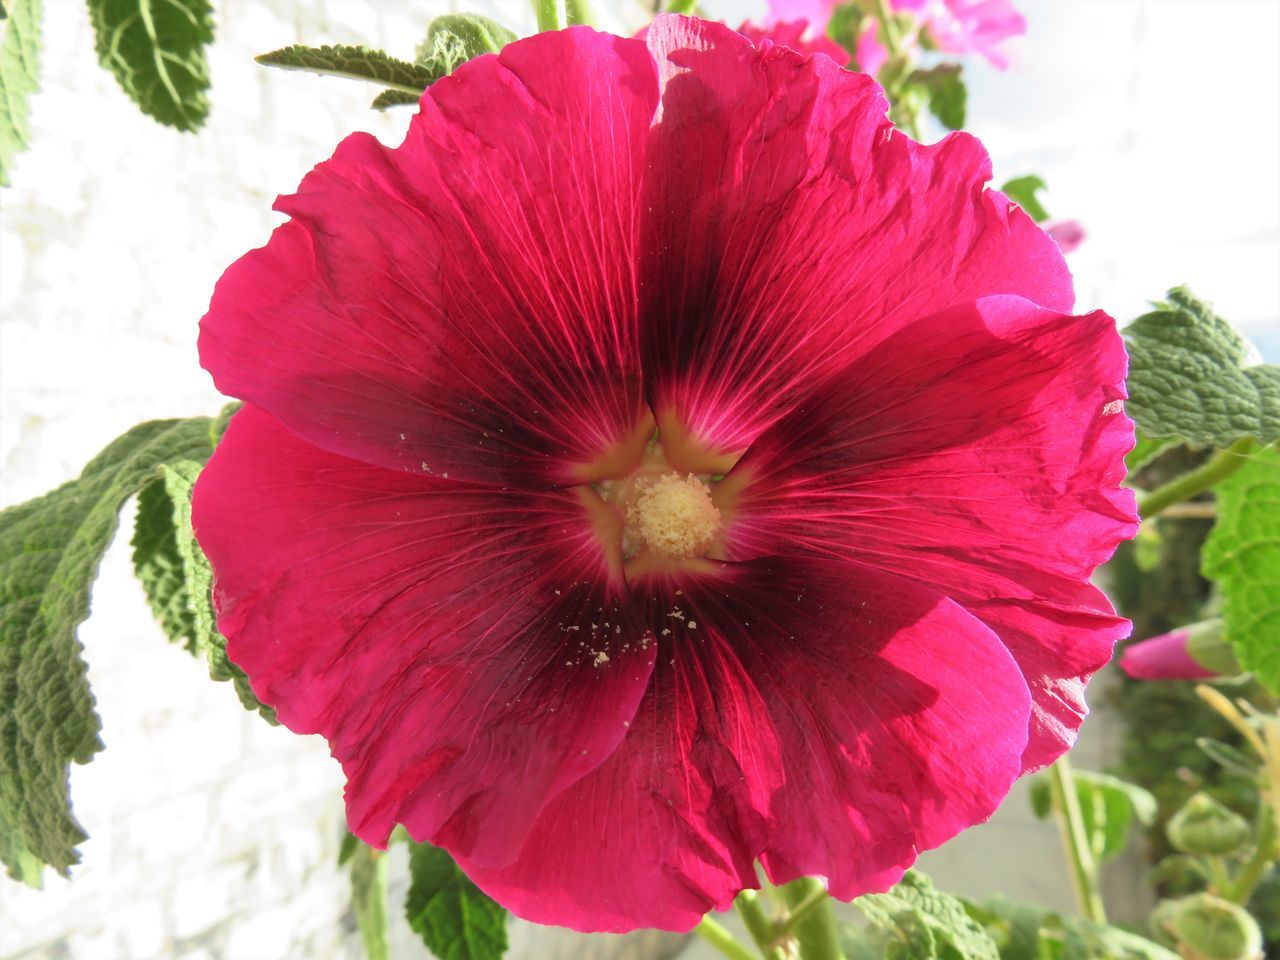 flower, nature, petal, fragility, beauty in nature, flower head, plant, close-up, no people, freshness, growth, outdoors, day, hibiscus, blooming, red, petunia